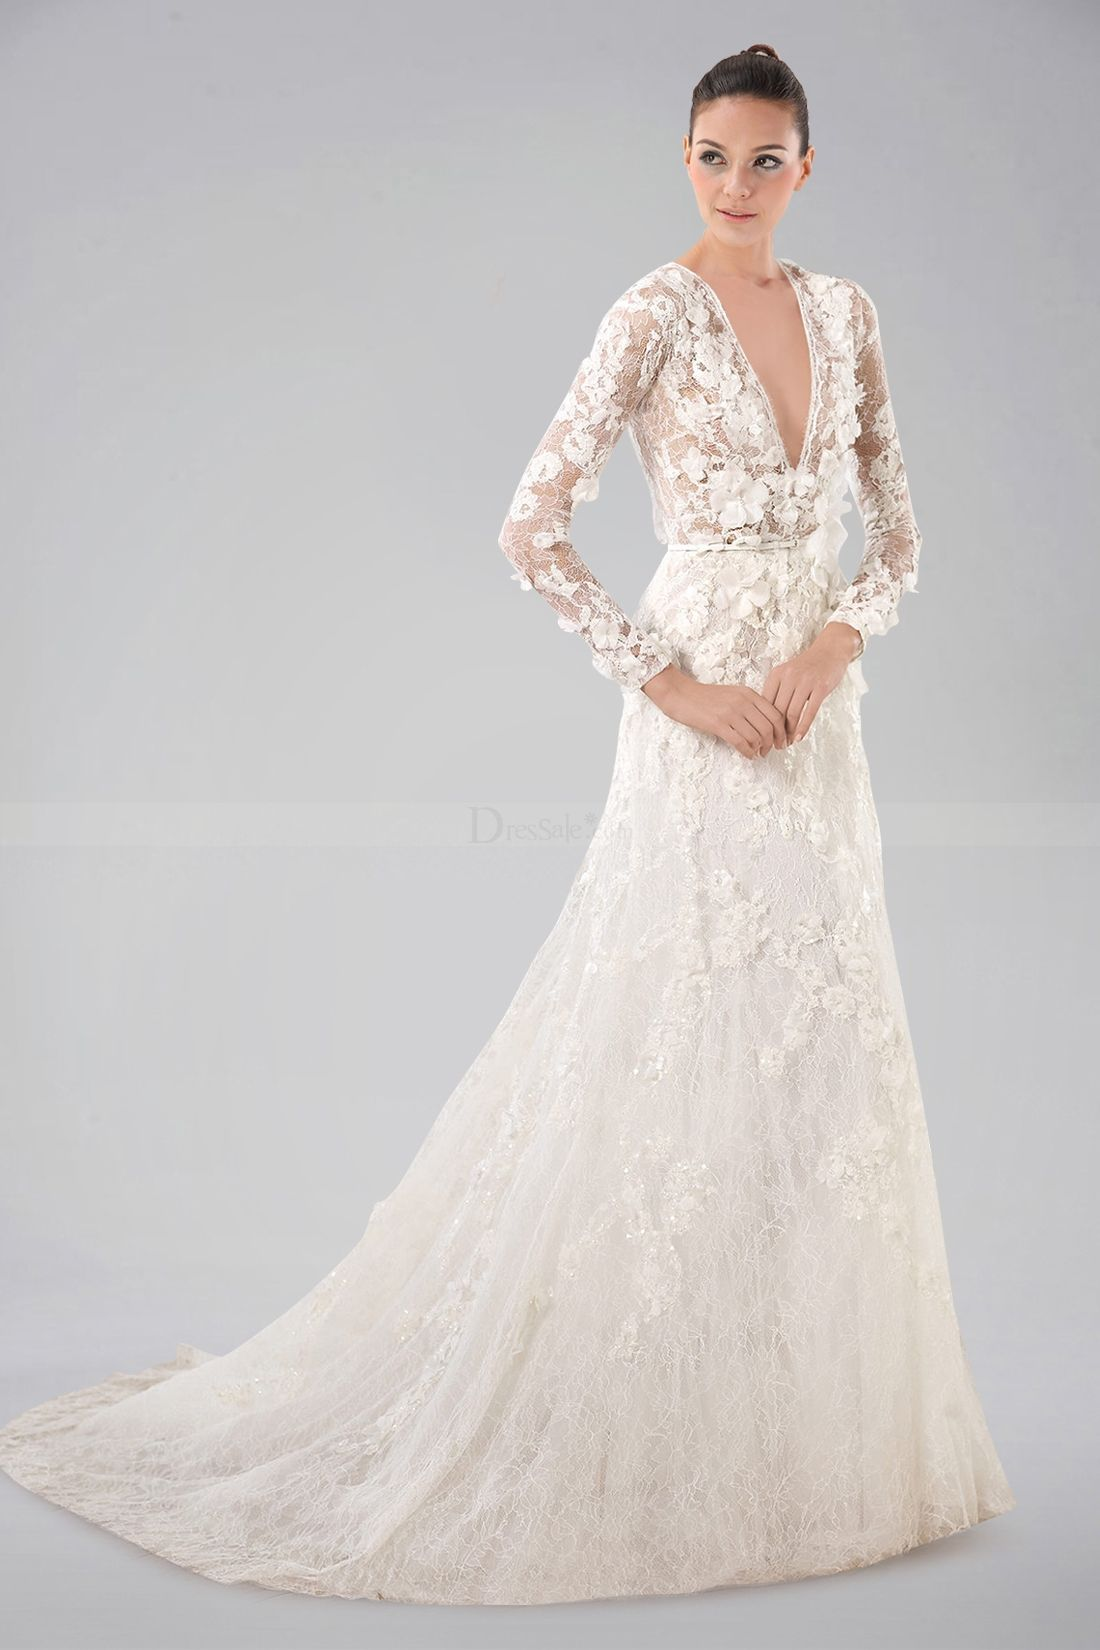 4a2c25d807772 Breezy V-neckline Long Sleeve Wedding Gown with Lace Overlay and Appliques